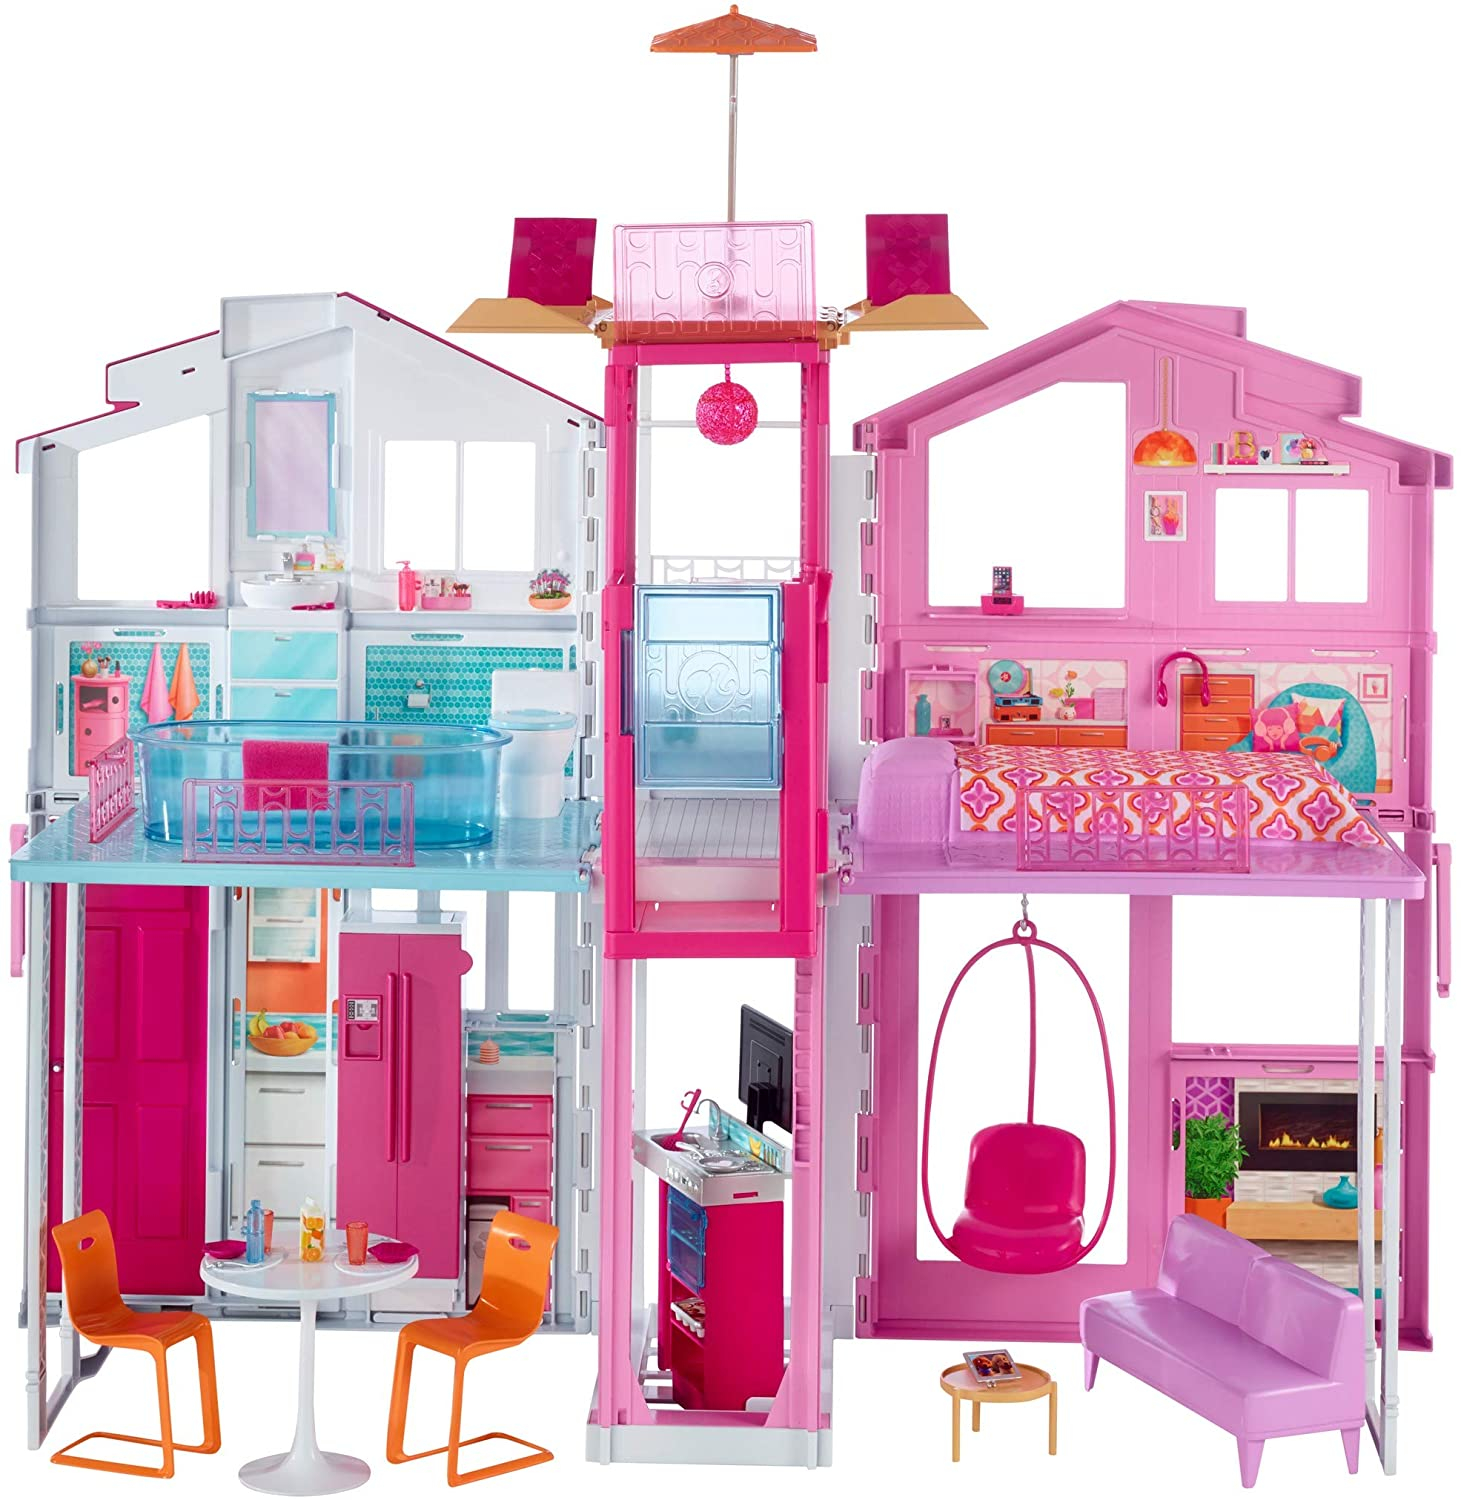 Review of Barbie 3-Story House with Pop-Up Umbrella